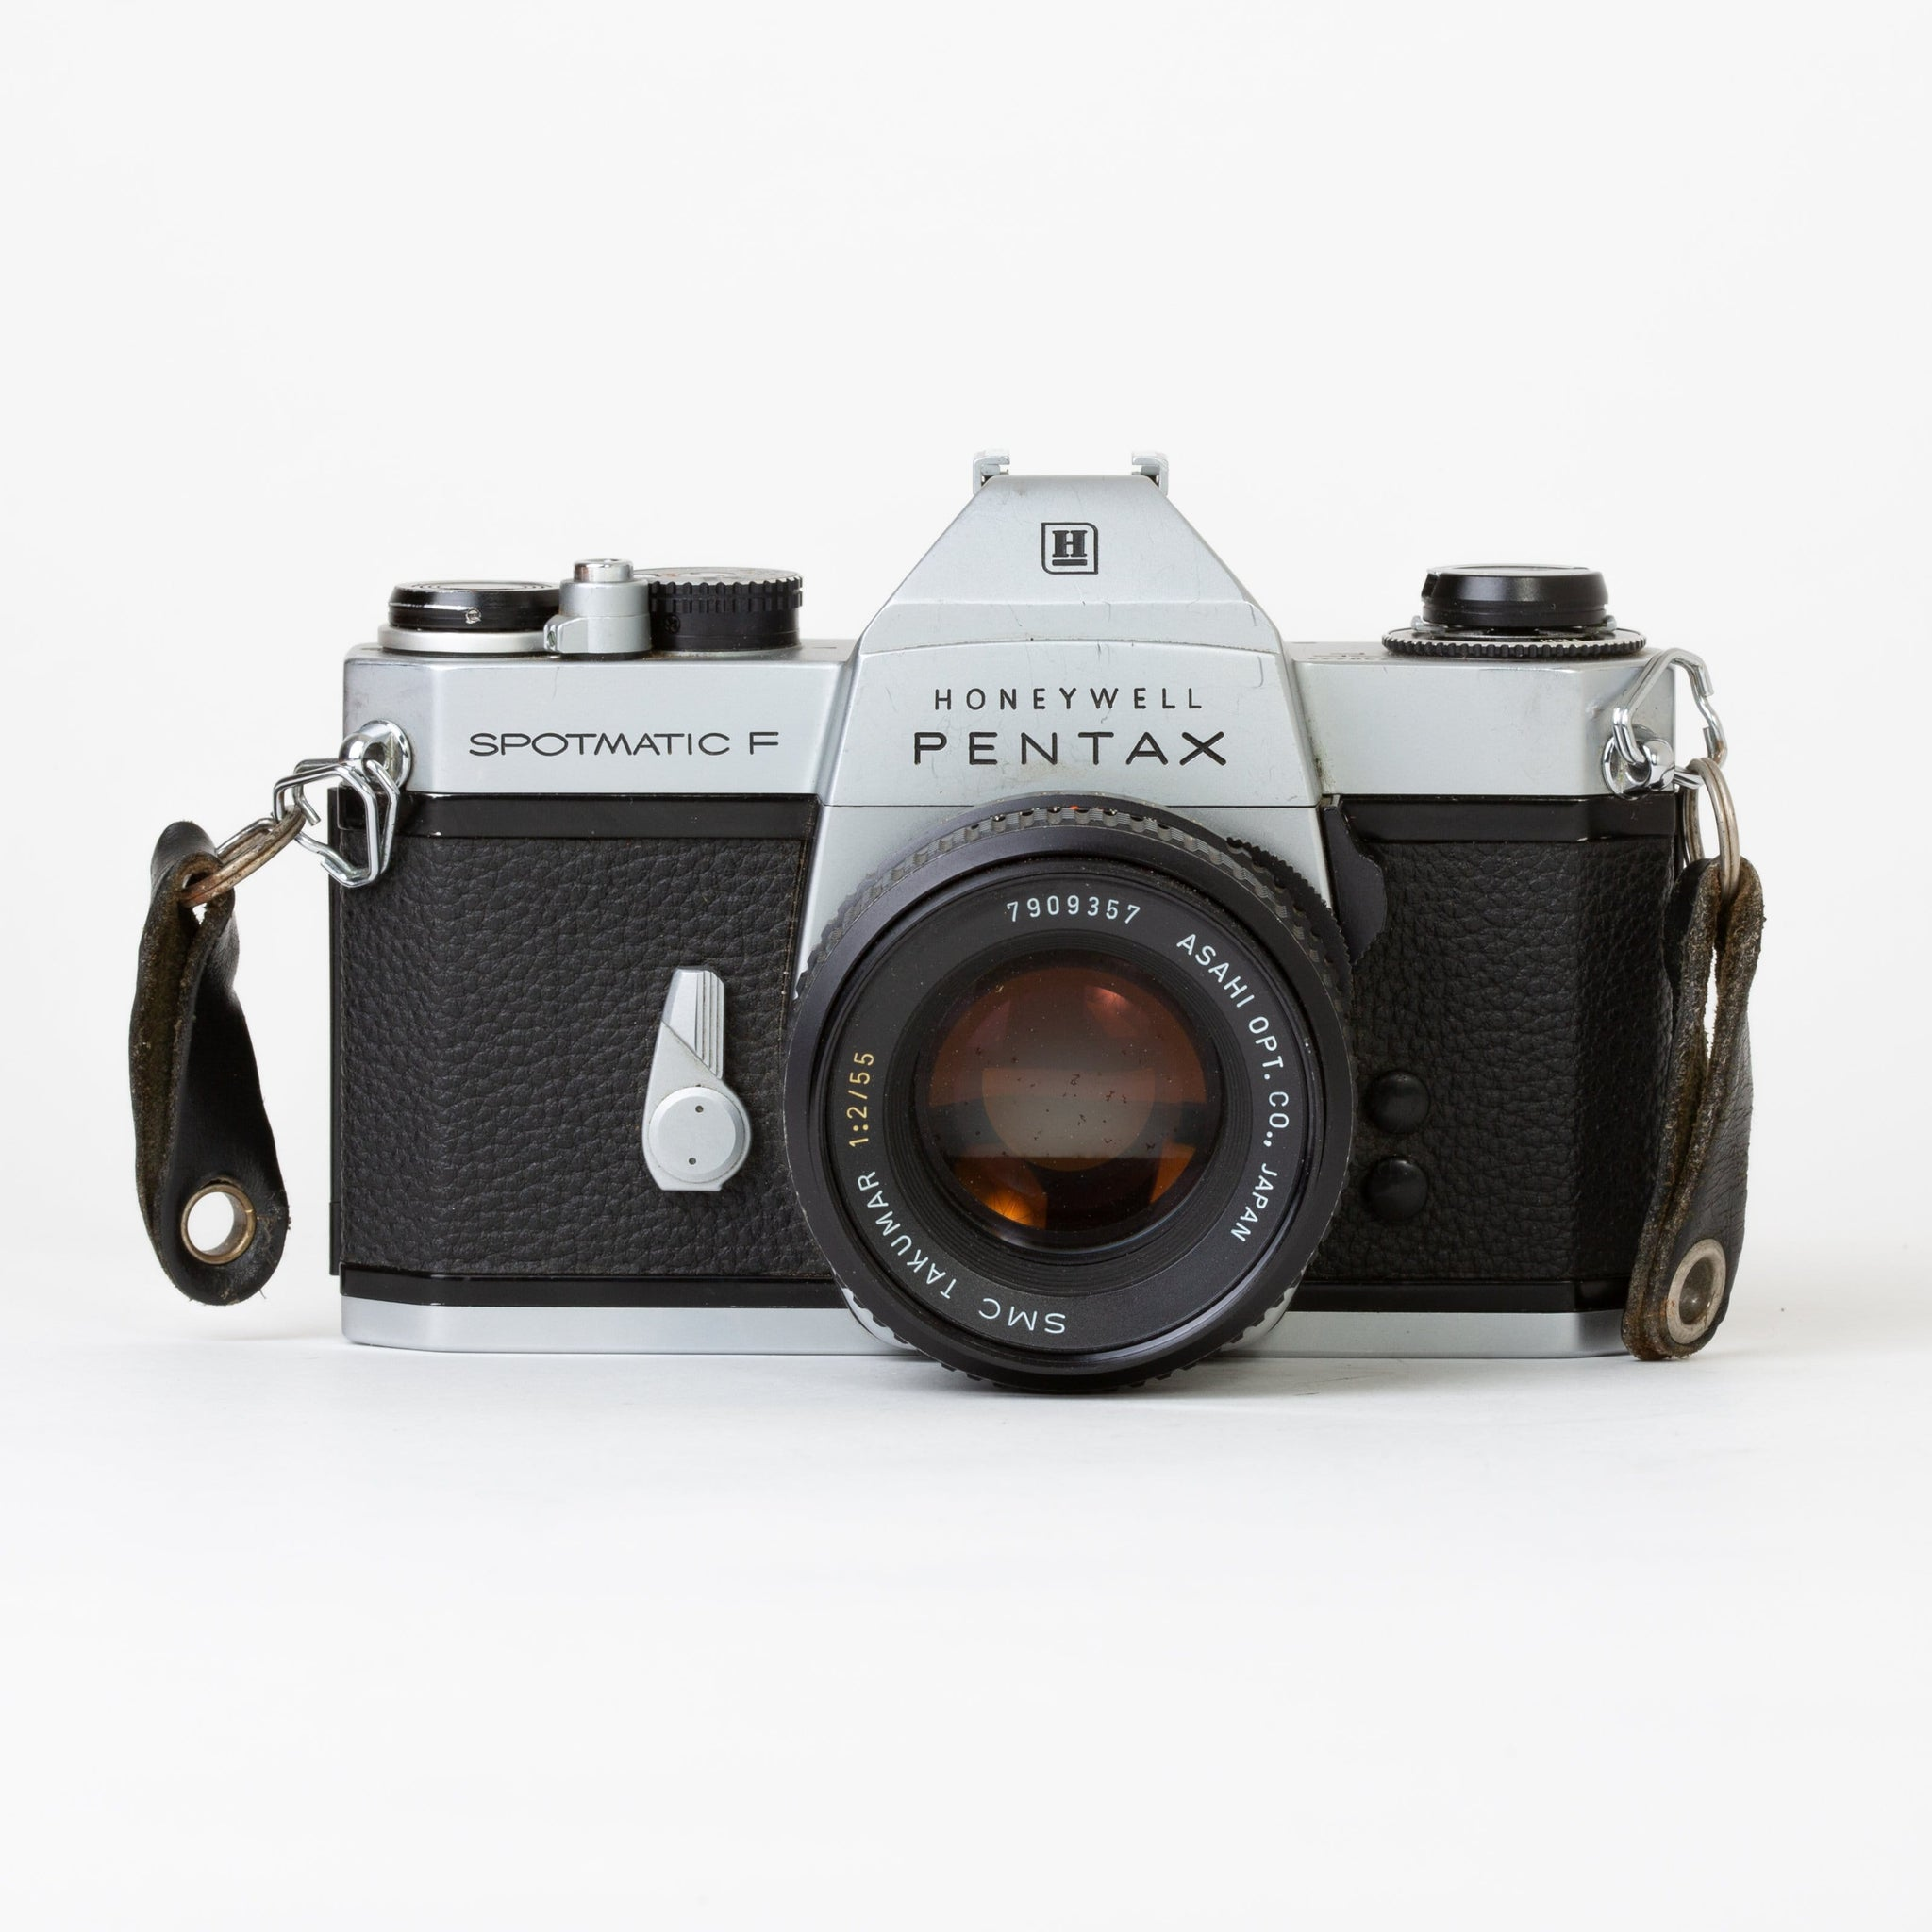 Honeywell Pentax Spotmatic F